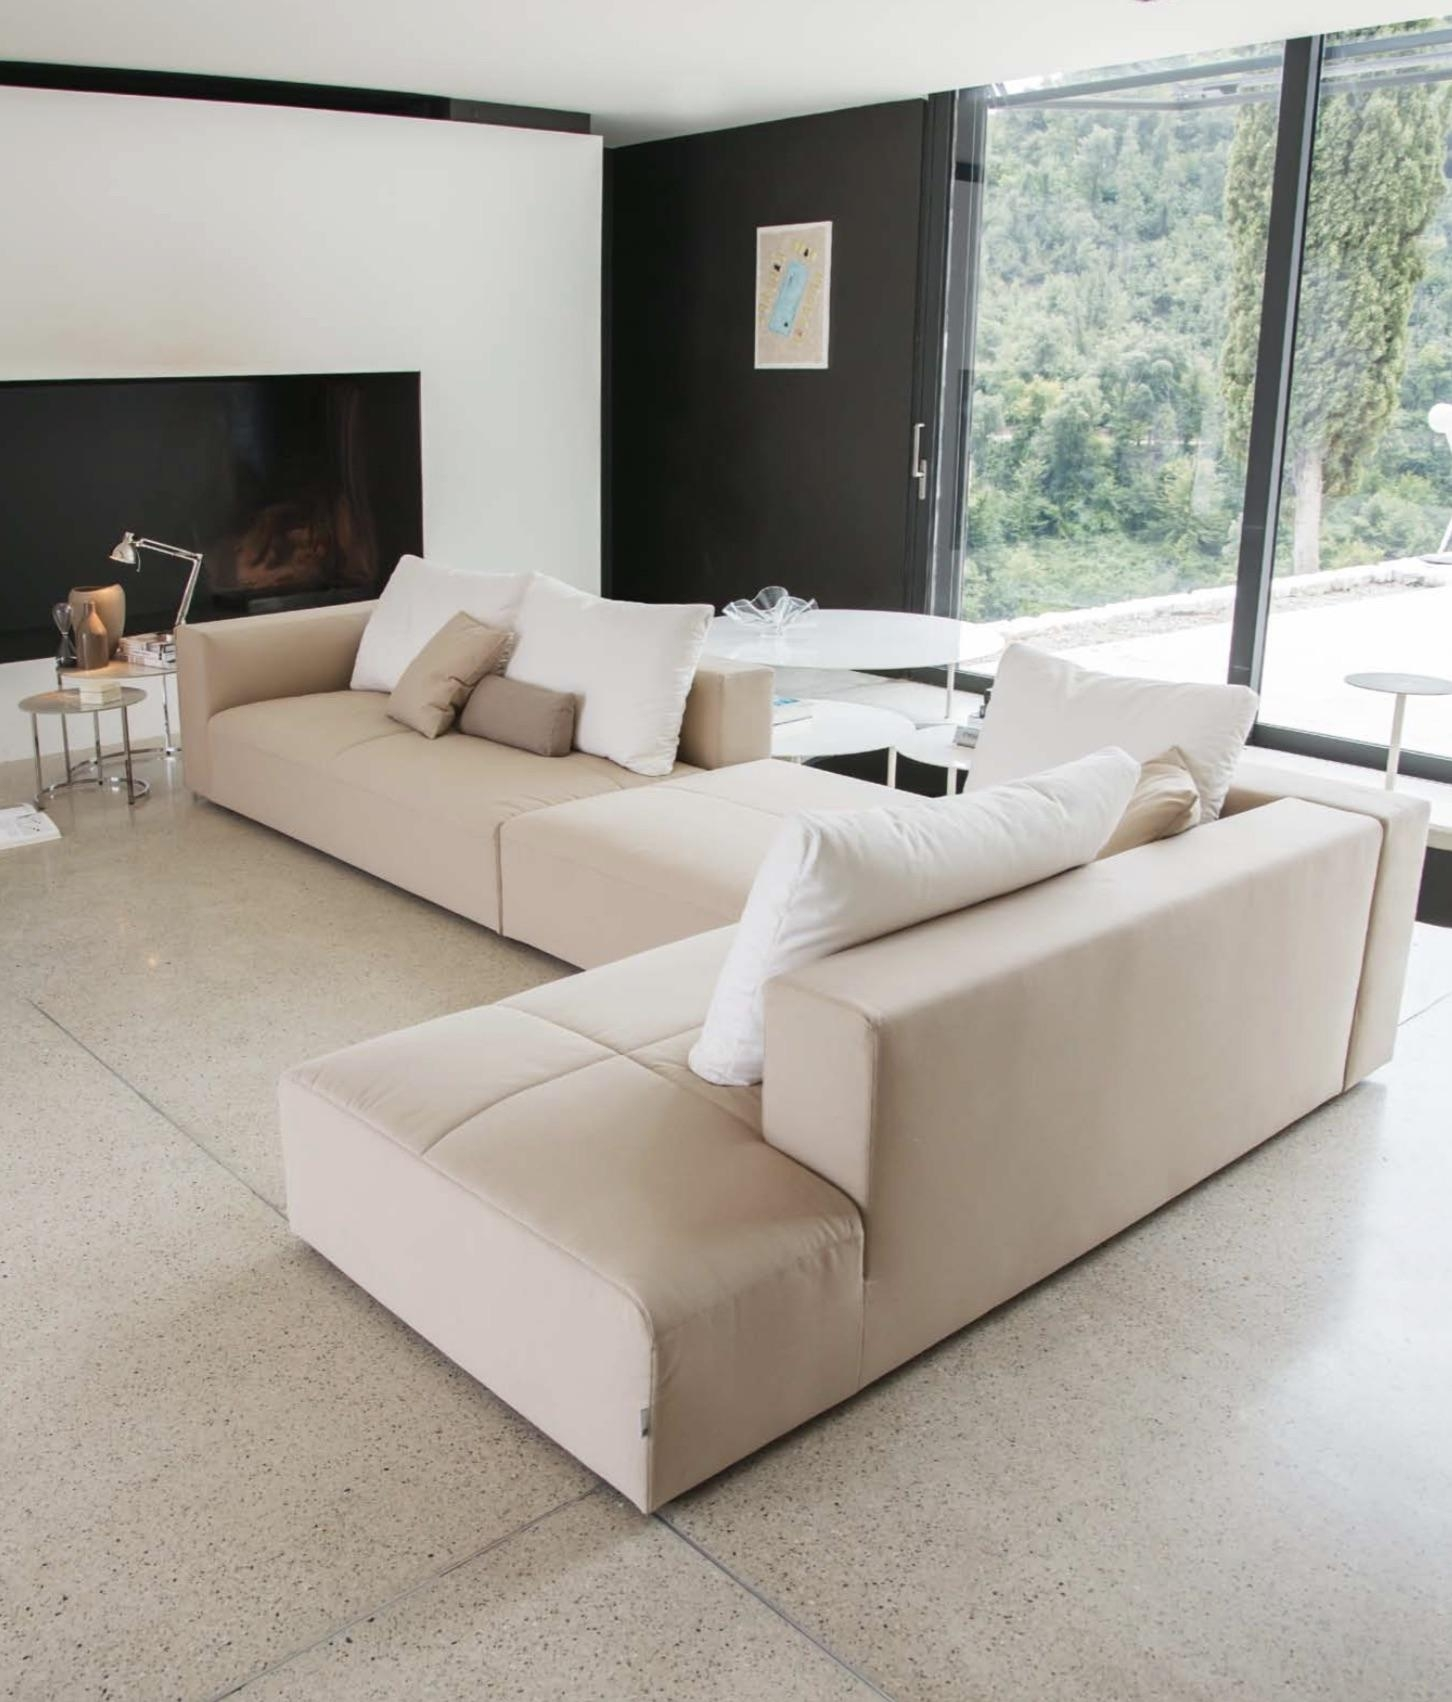 Italian Sectional Sofas | Momentoitalia Italian Modern Sofas With Down Sectional Sofa (Image 9 of 15)